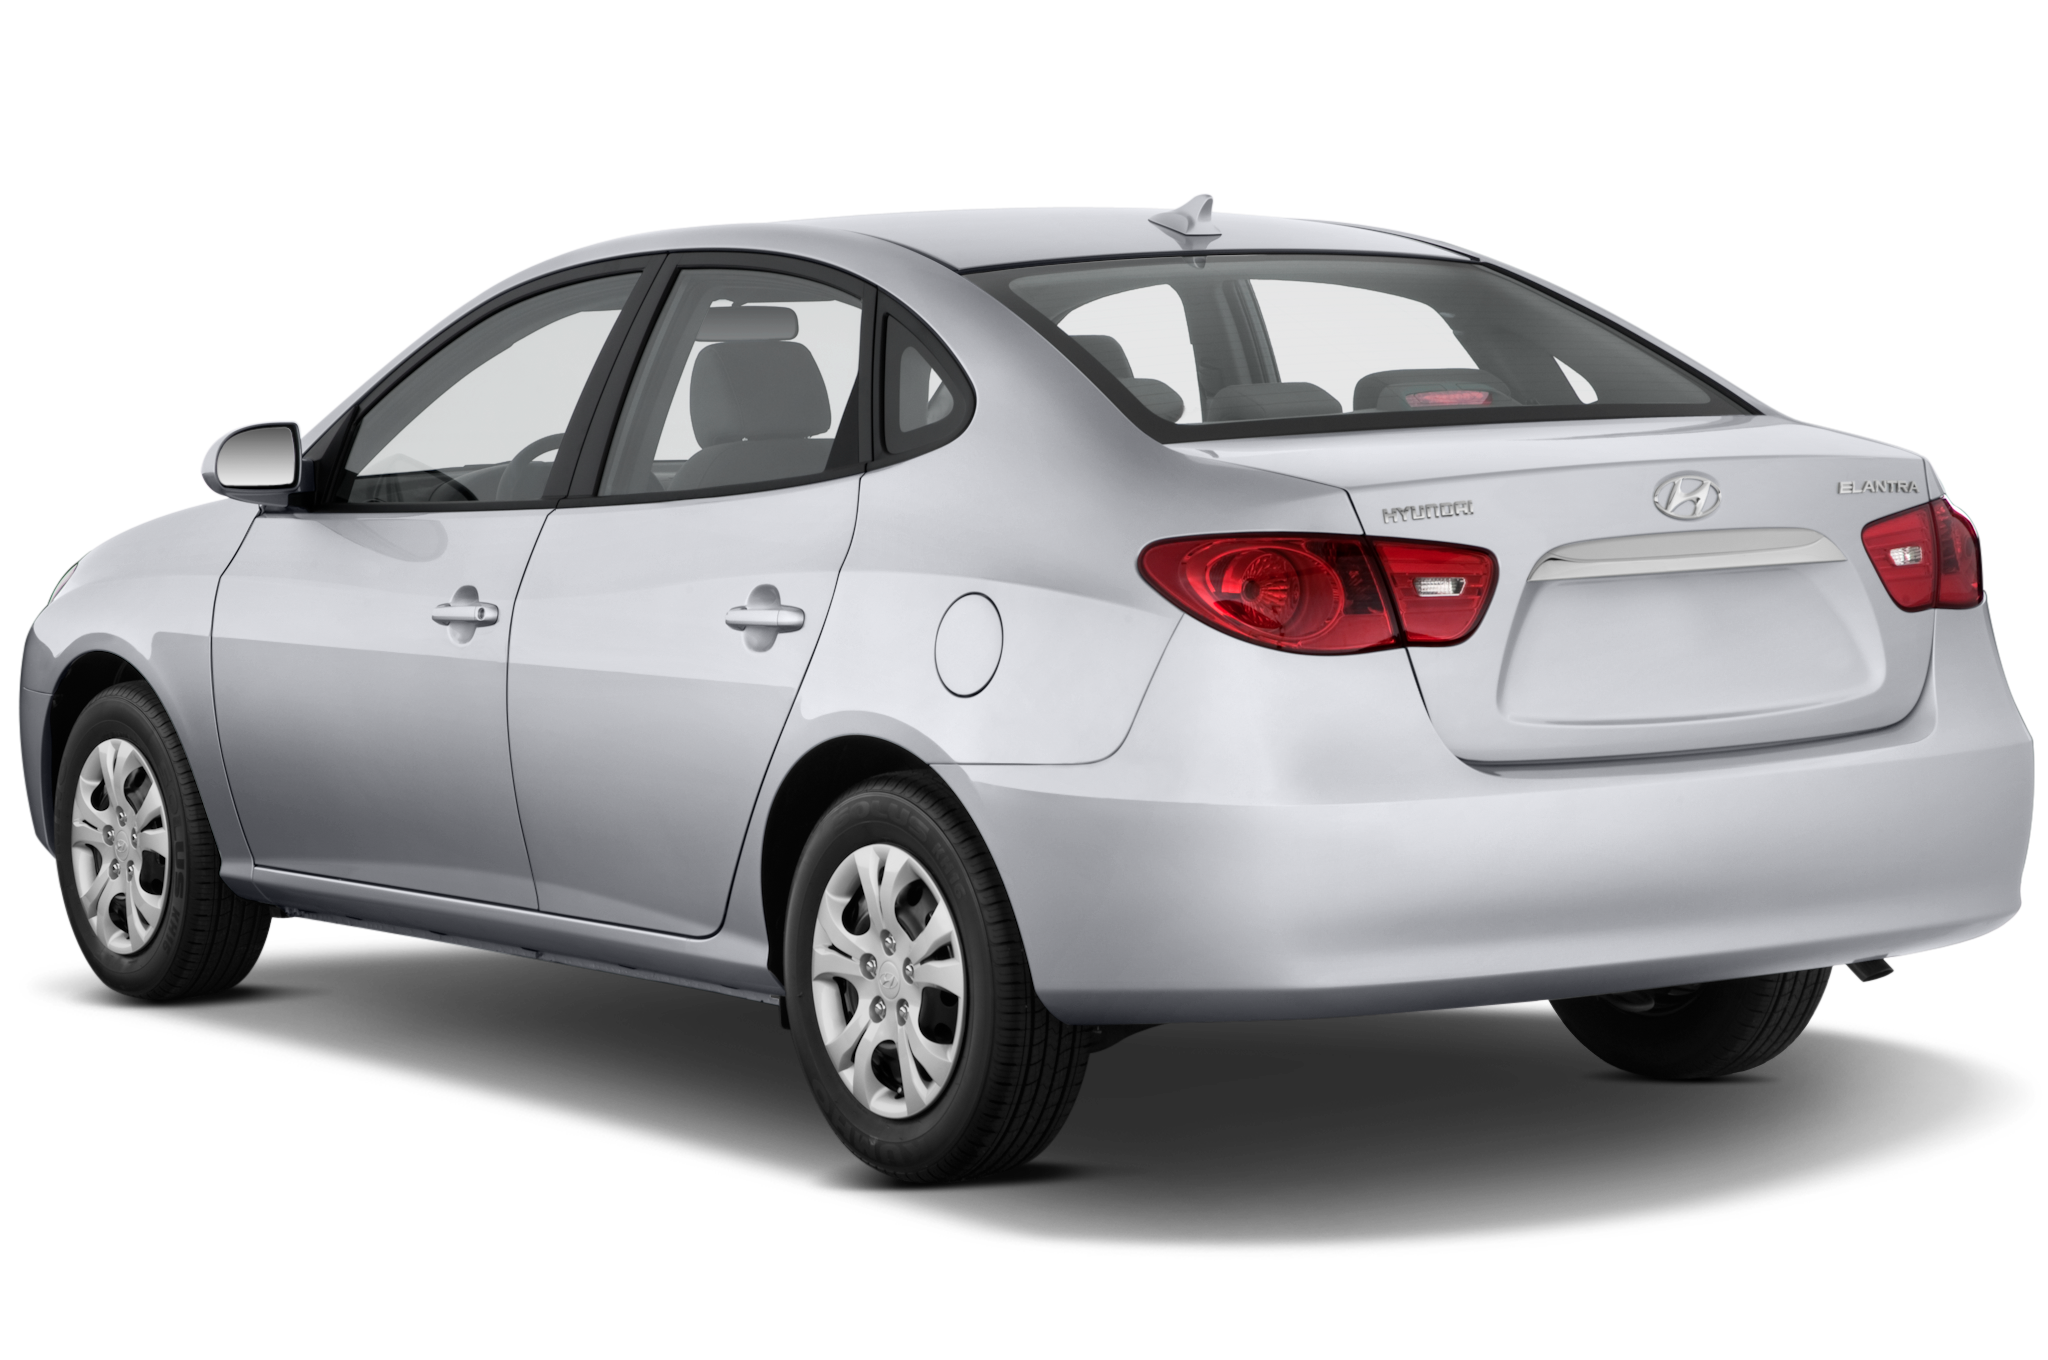 2010 Hyundai Elantra Now Available With In Dash Navigation